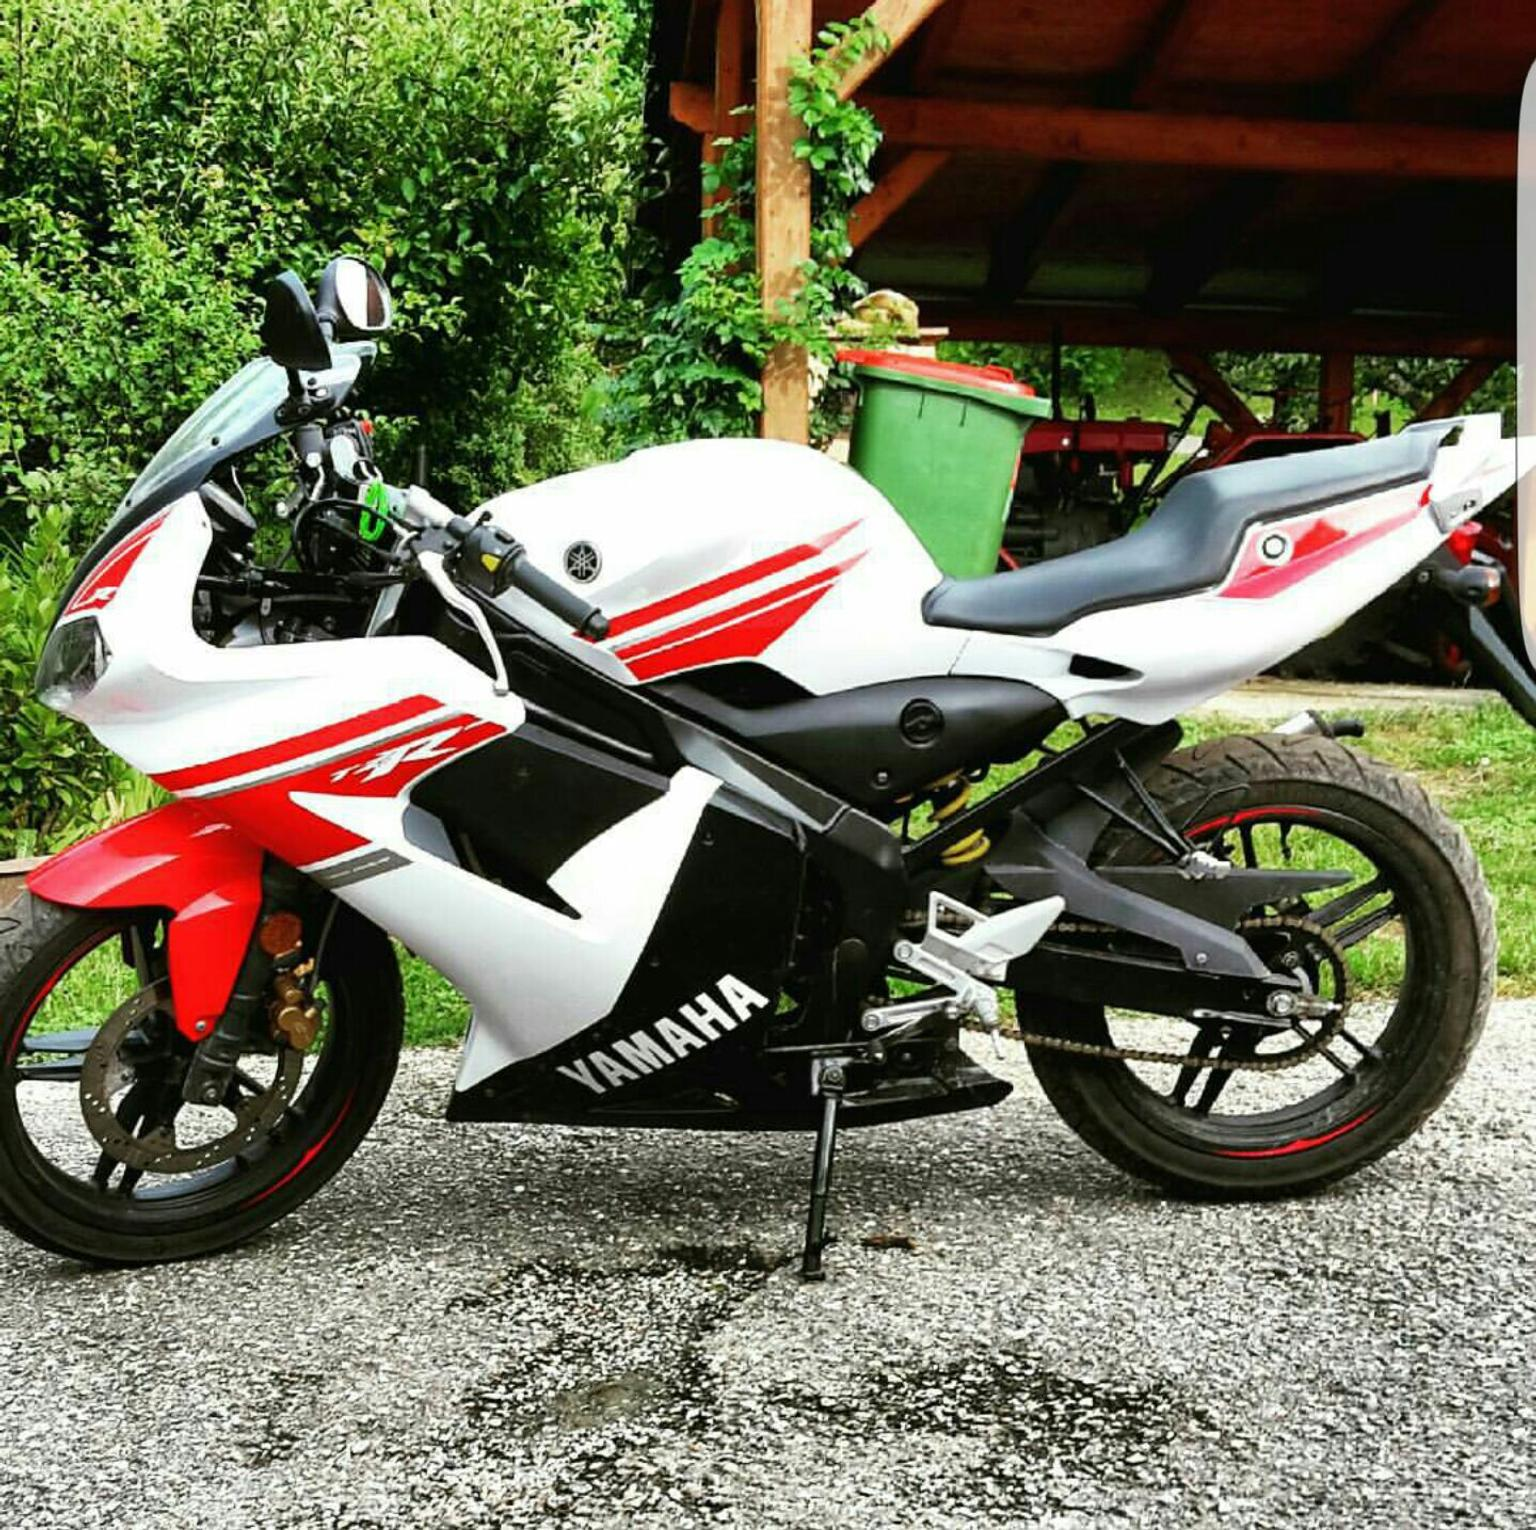 YAMAHA TZR 50 - Review and photos